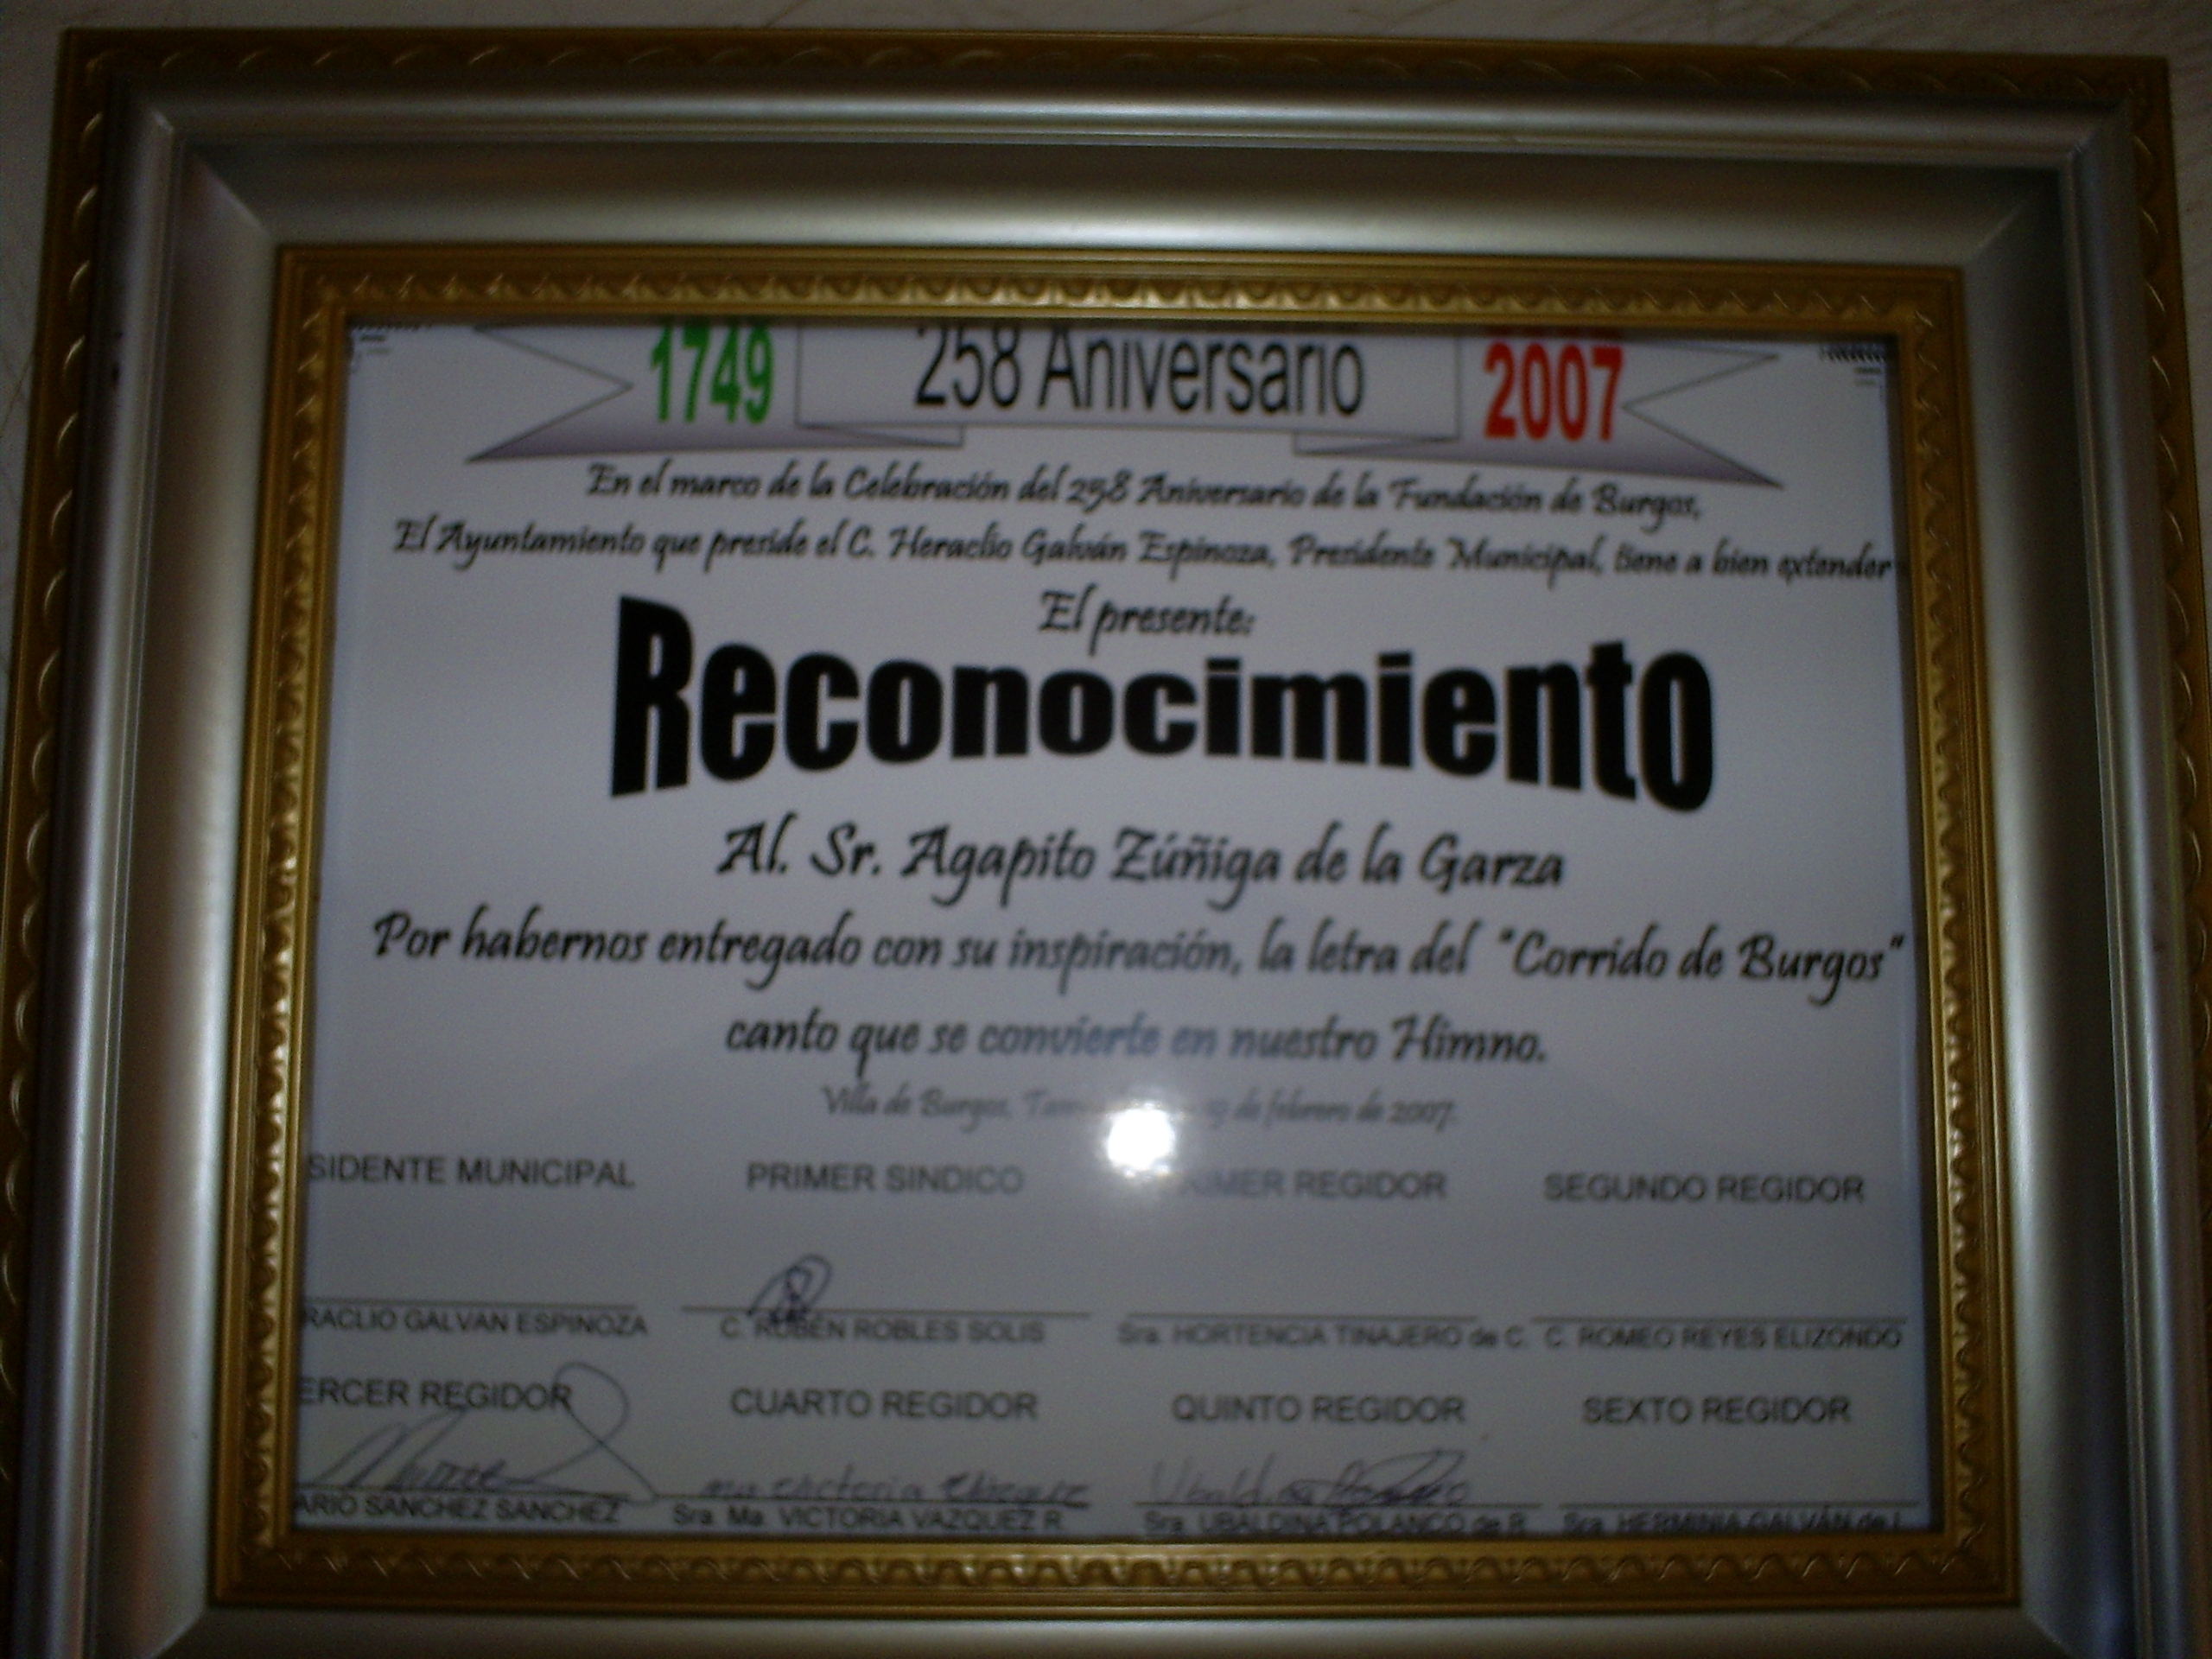 Recognition of Agapito Zuniga in Burgos